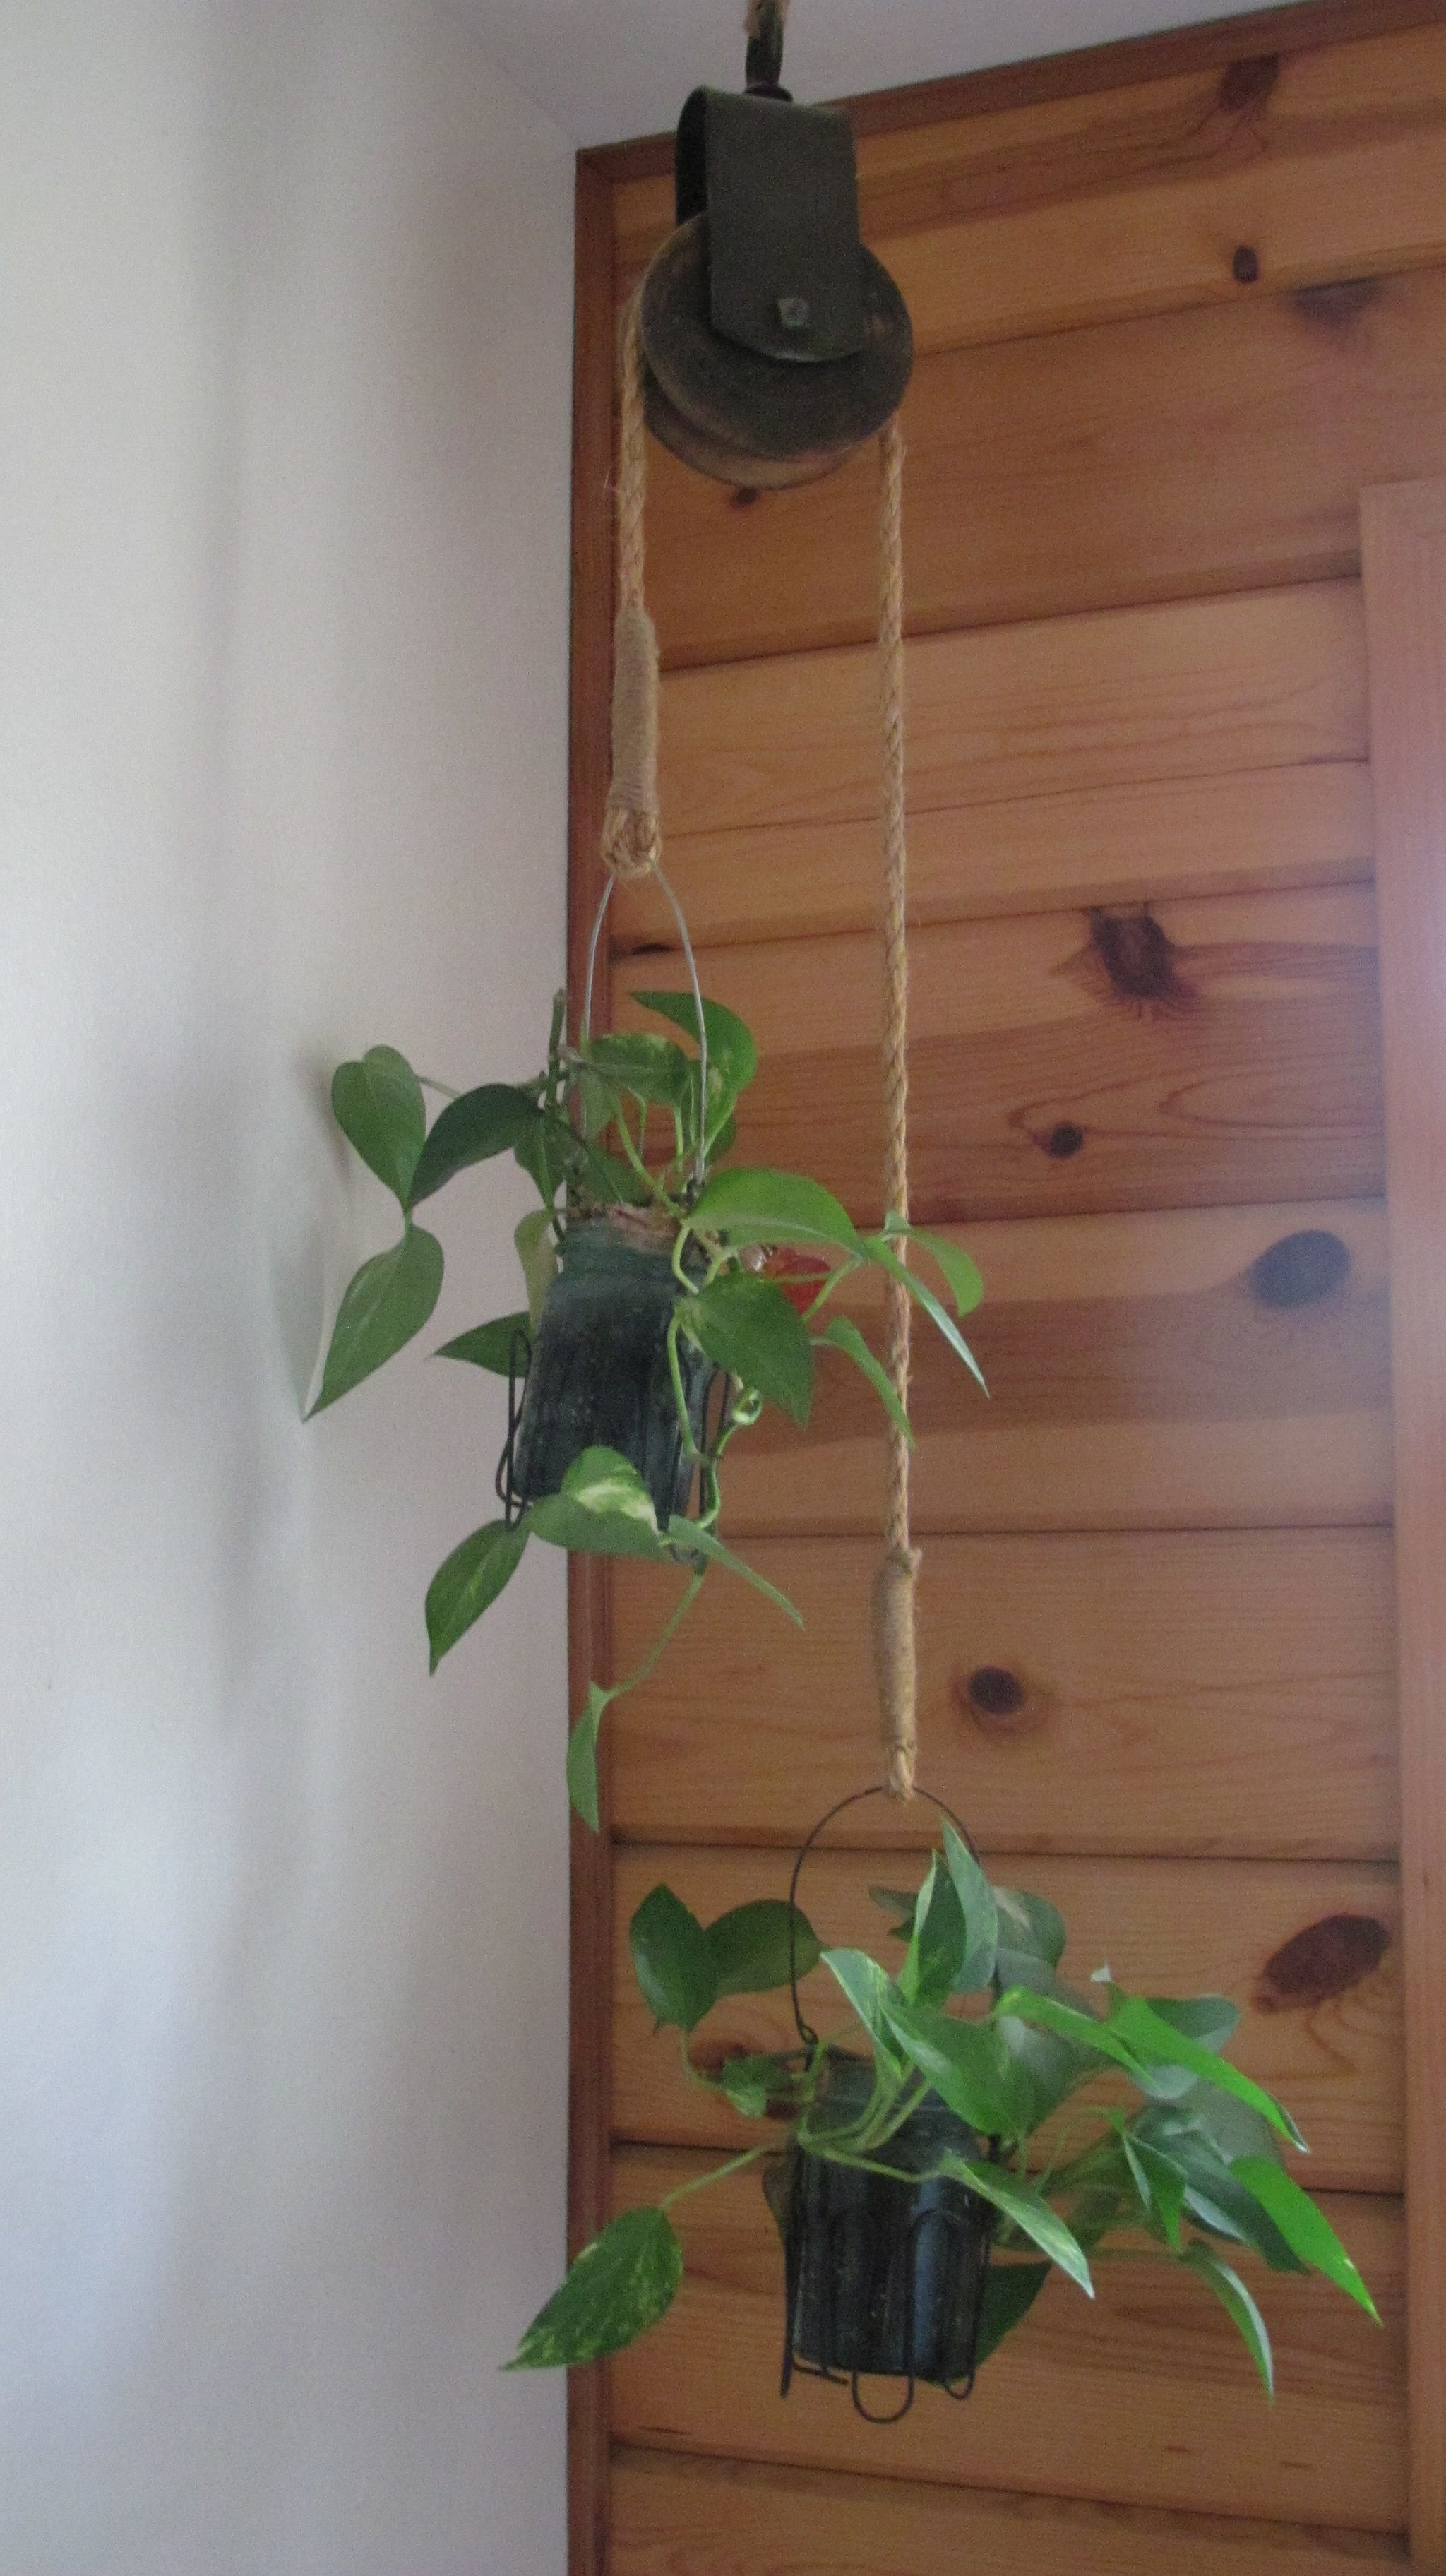 Indoor Wall Mounted Plant Holders Old Barn Pulley Used As A Plant Holder Hanging From